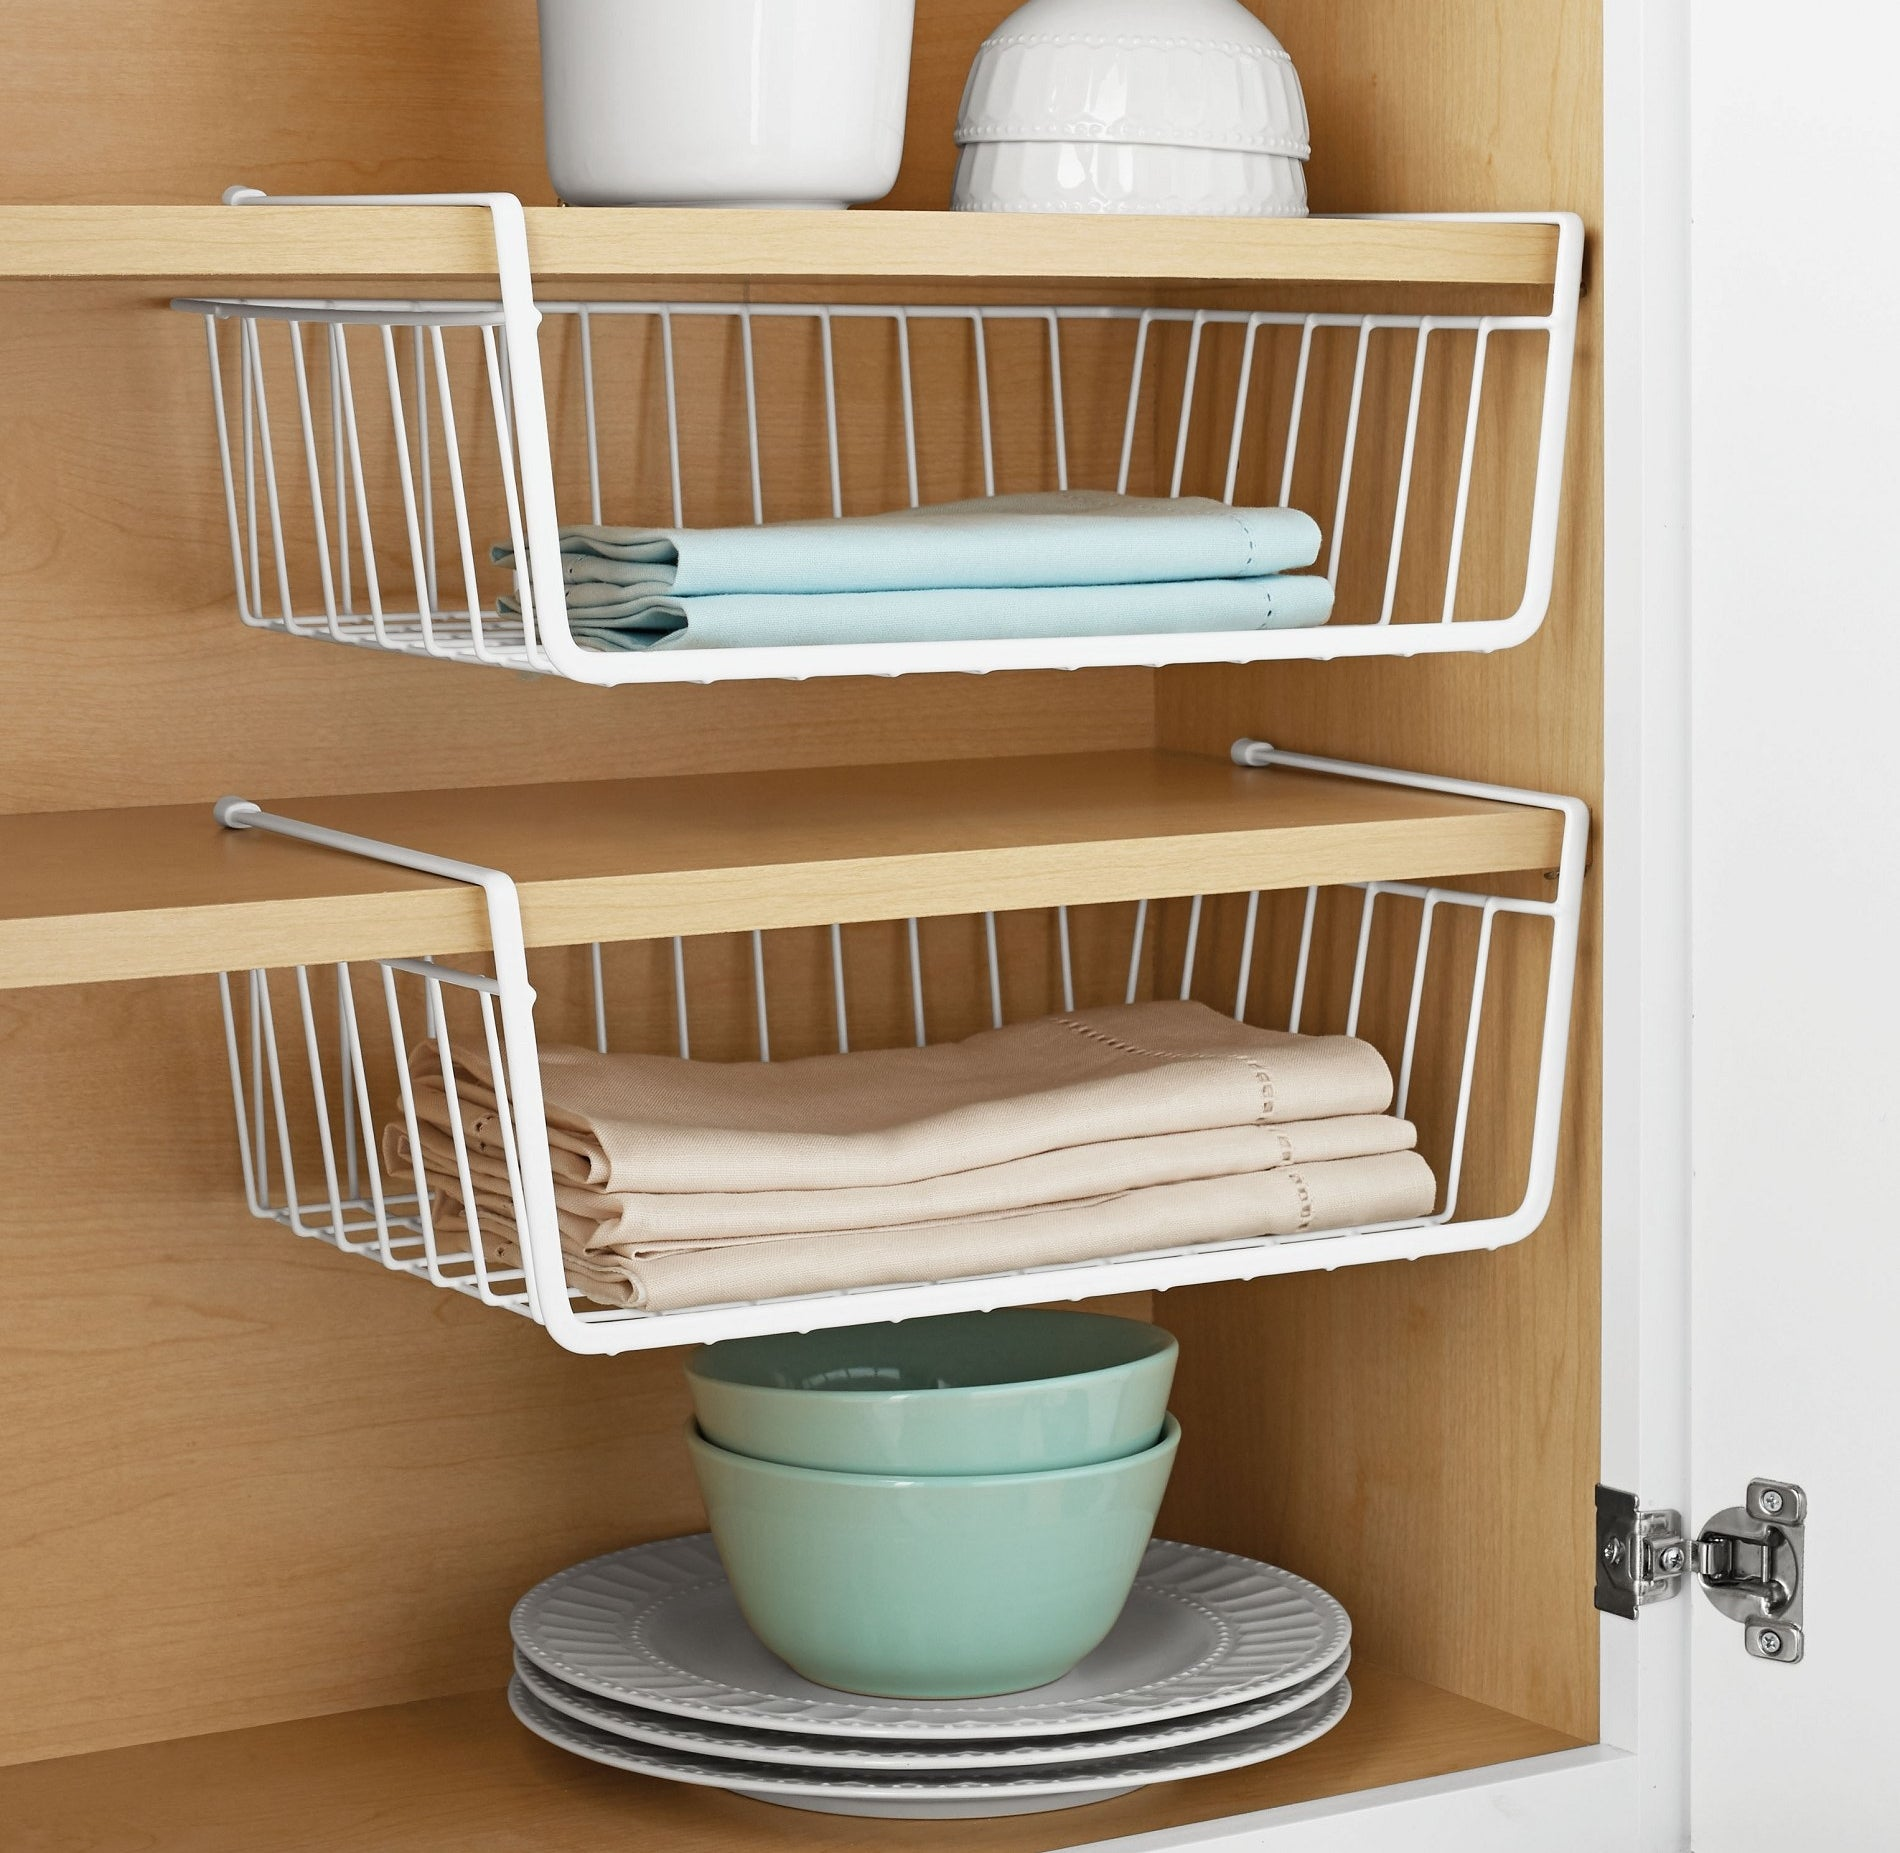 The baskets hung from cabinet shelves